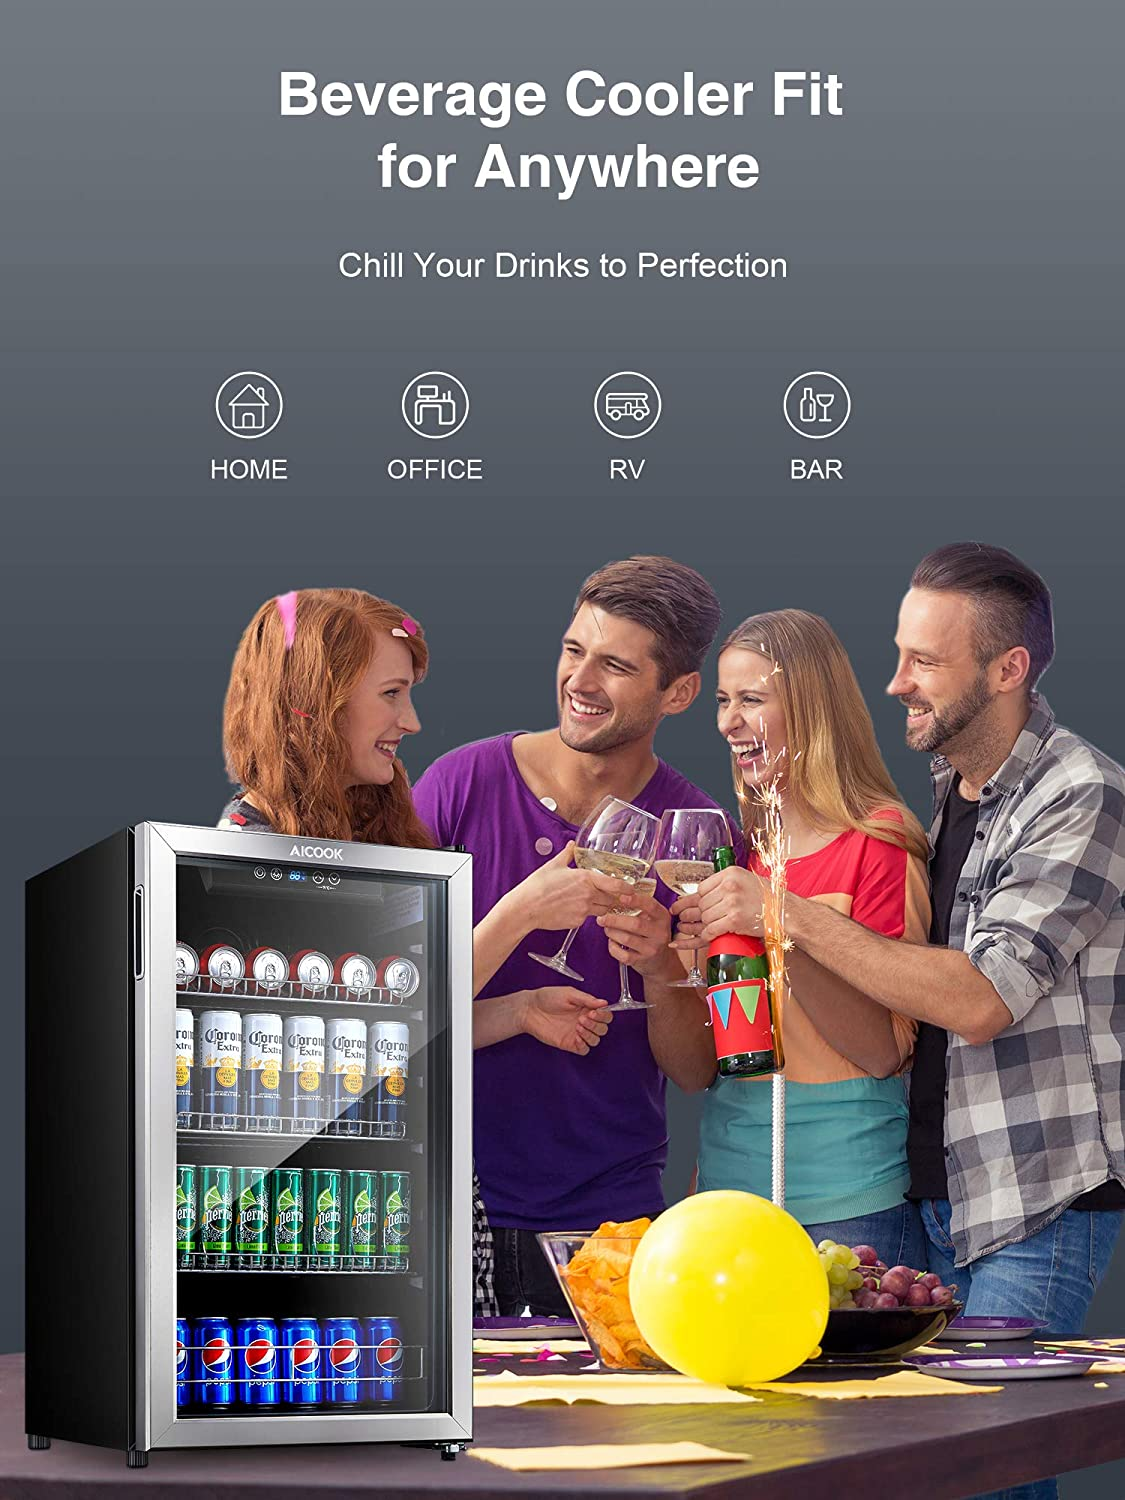 Aicook Beverage Refrigerator and Cooler Review 2021